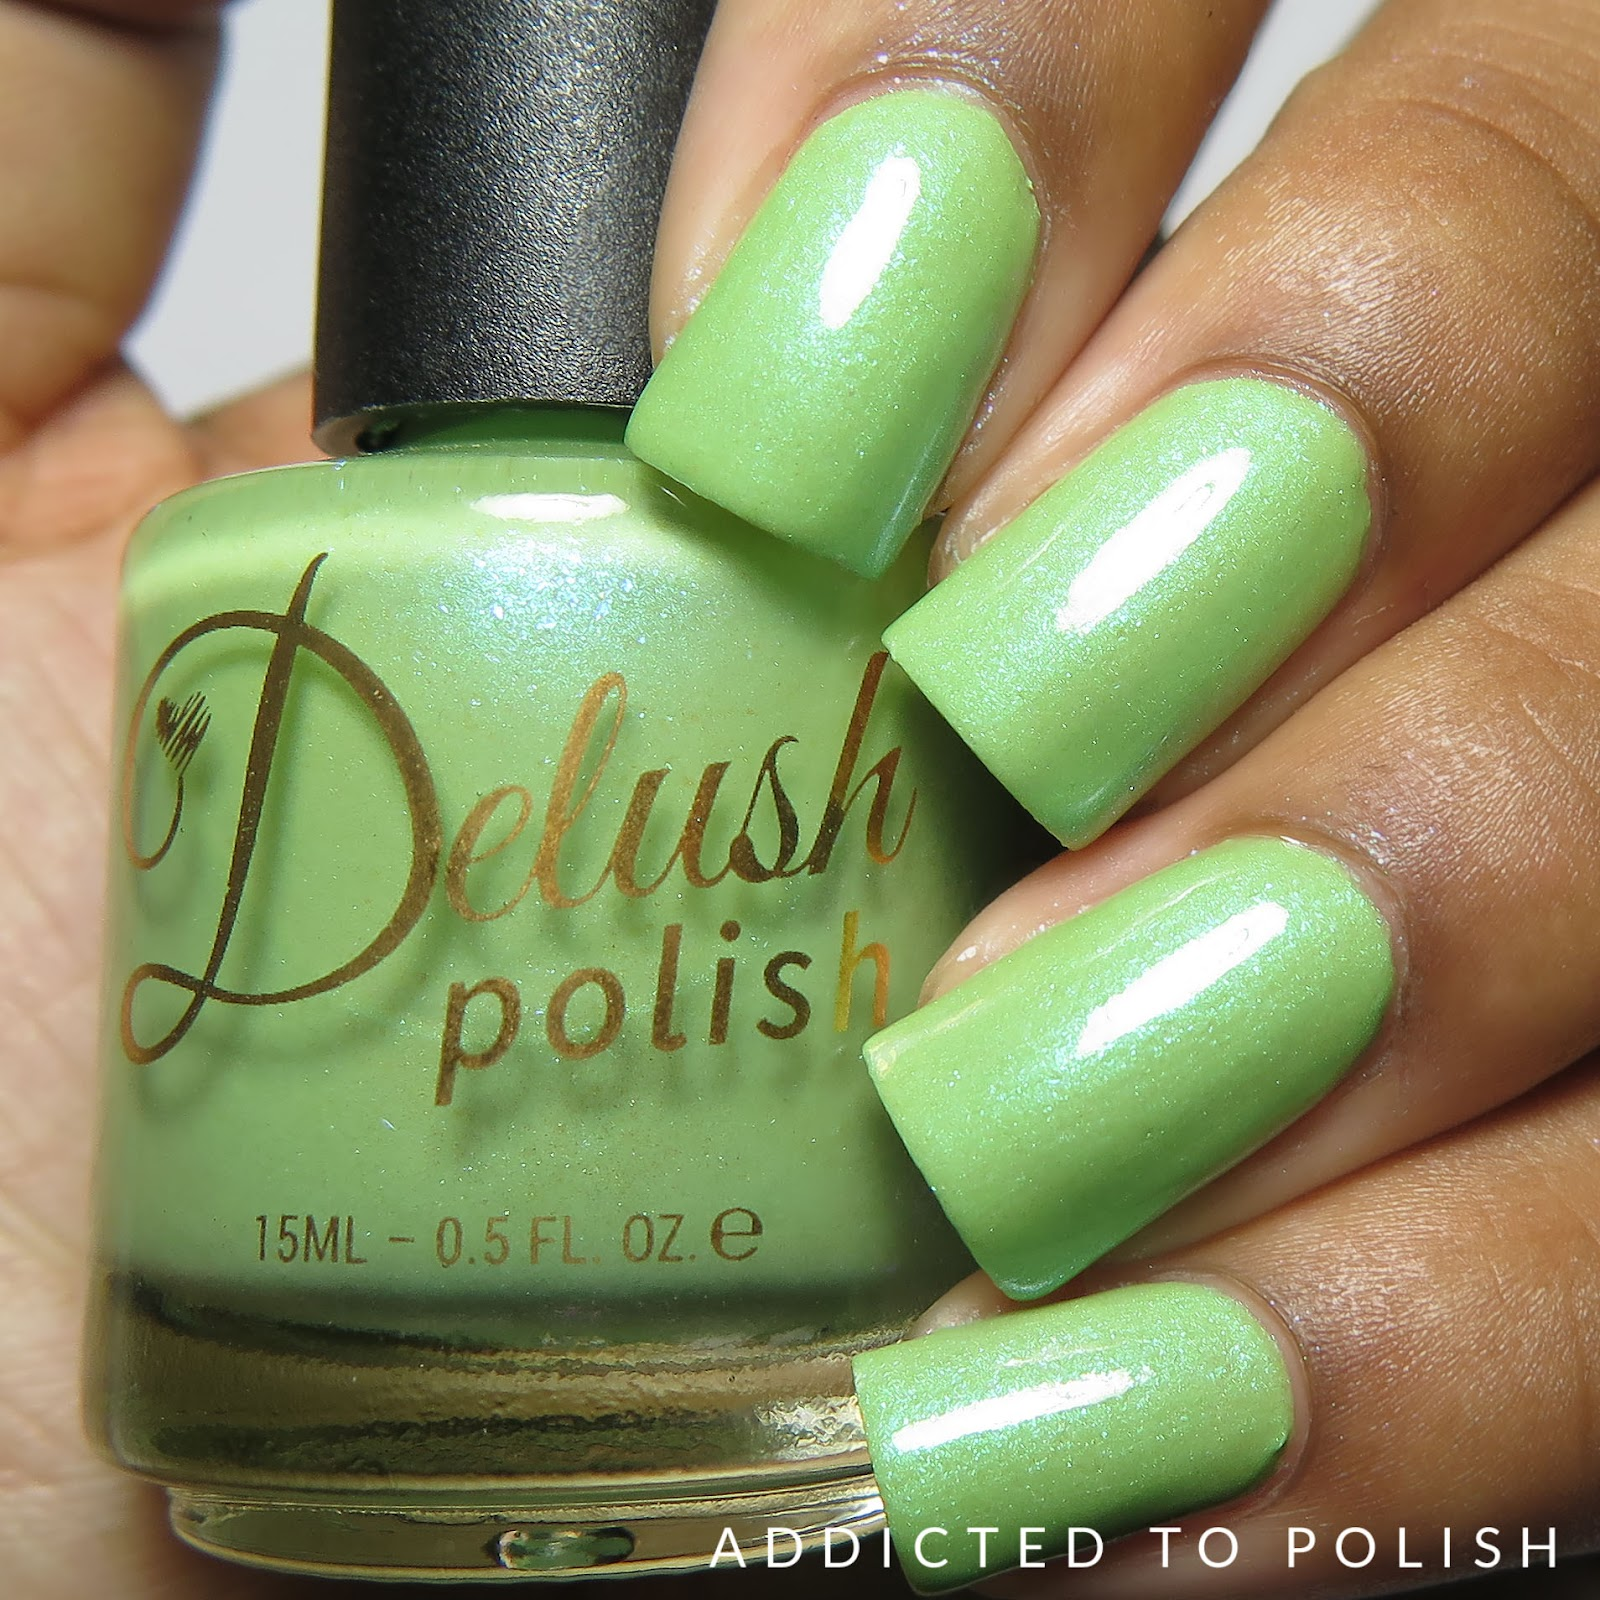 Delush Polish Everything I Do I Tiramisu High and Mightea Spring 2016 collection